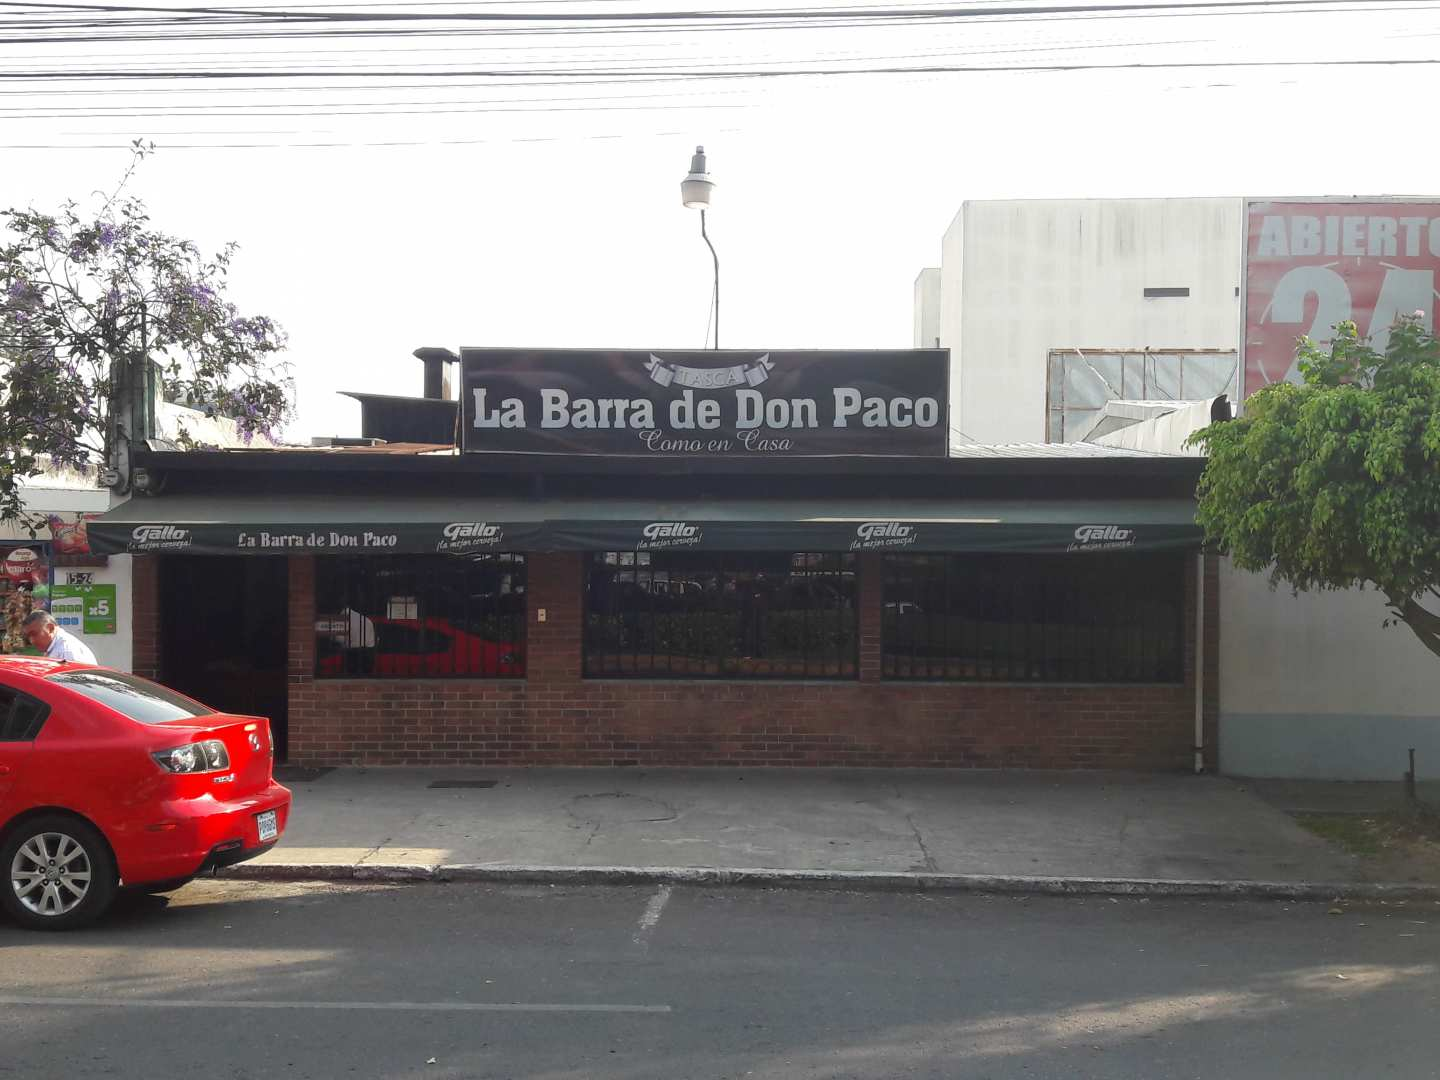 La Barra de Don Paco